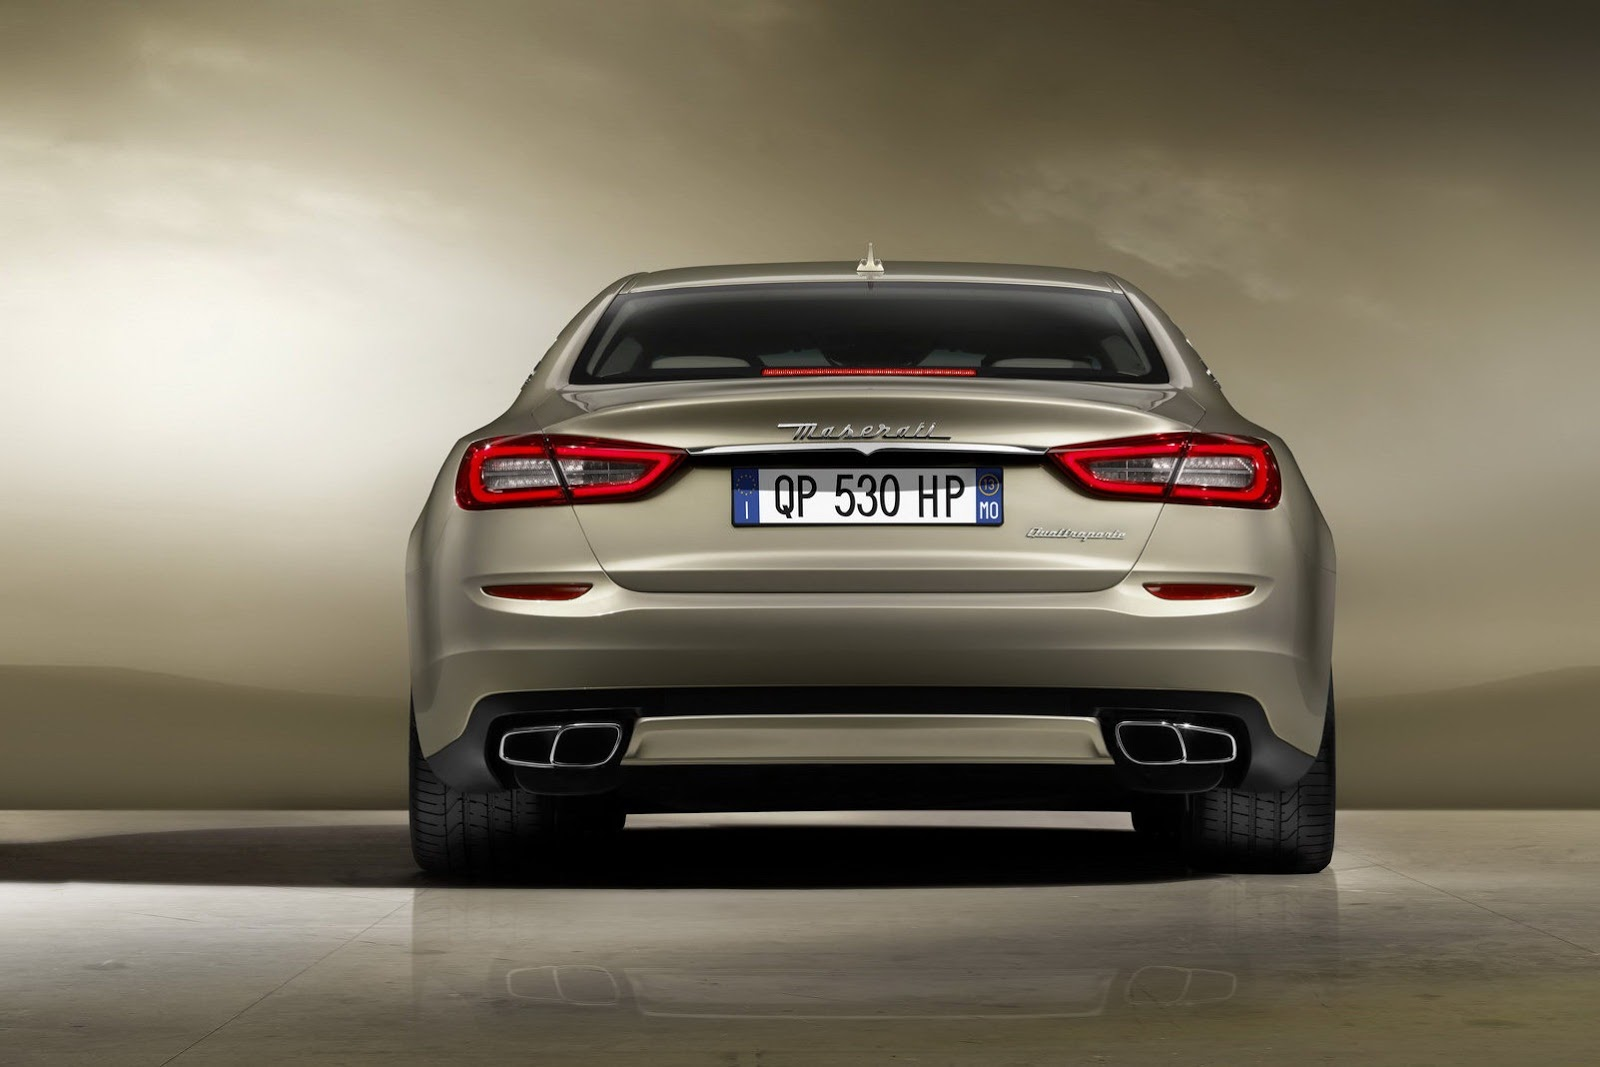 http://www.autotribute.com/wp-content/gallery/2013-maserati-quattroporte/new-2013-maserati-quattroporte-rear-view.jpg